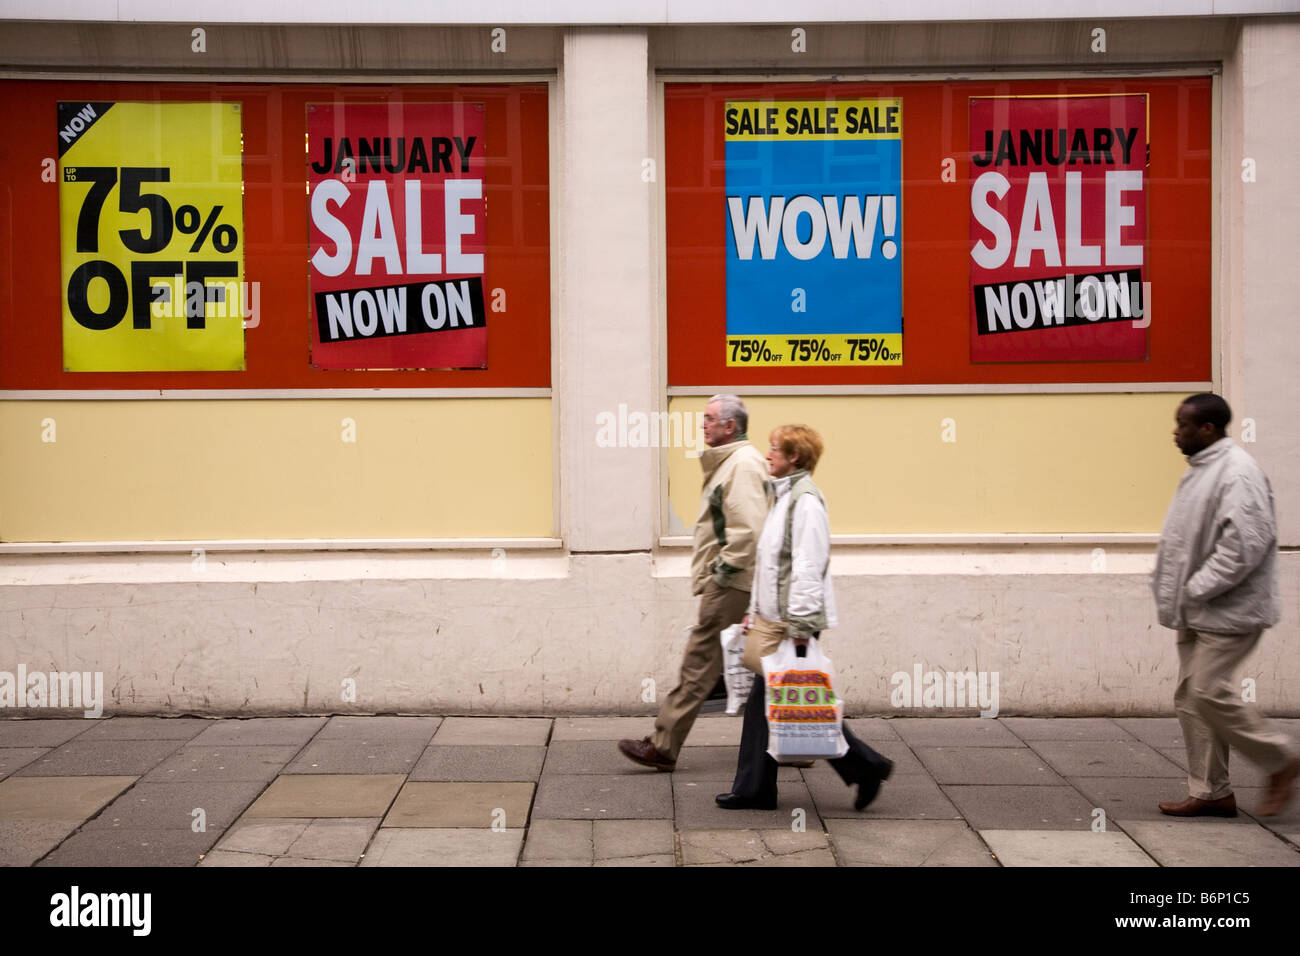 Signs announce the start of the January sales. Shoppers pass by the window. Stock Photo